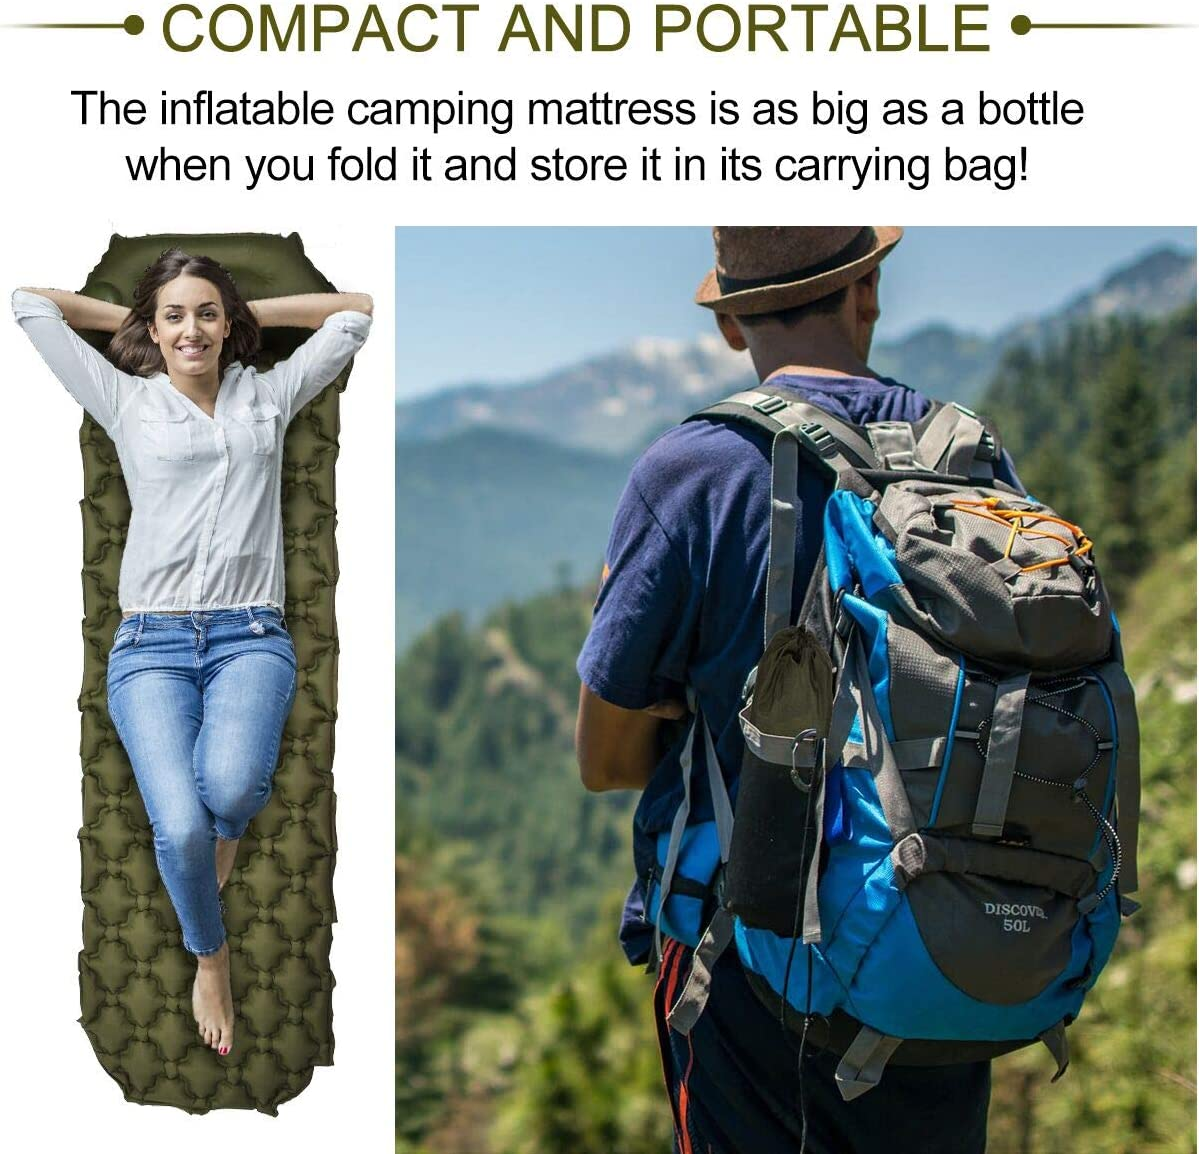 Camping Sleeping Pad, Upgraded Inflatable Camping Mat with Built-in Pump, 2.5 Thick Sleeping Pads, Durable Waterproof Air Mattress Compact Ultralight Hiking Pad for Tent,Travel, Backpacking, Hiking